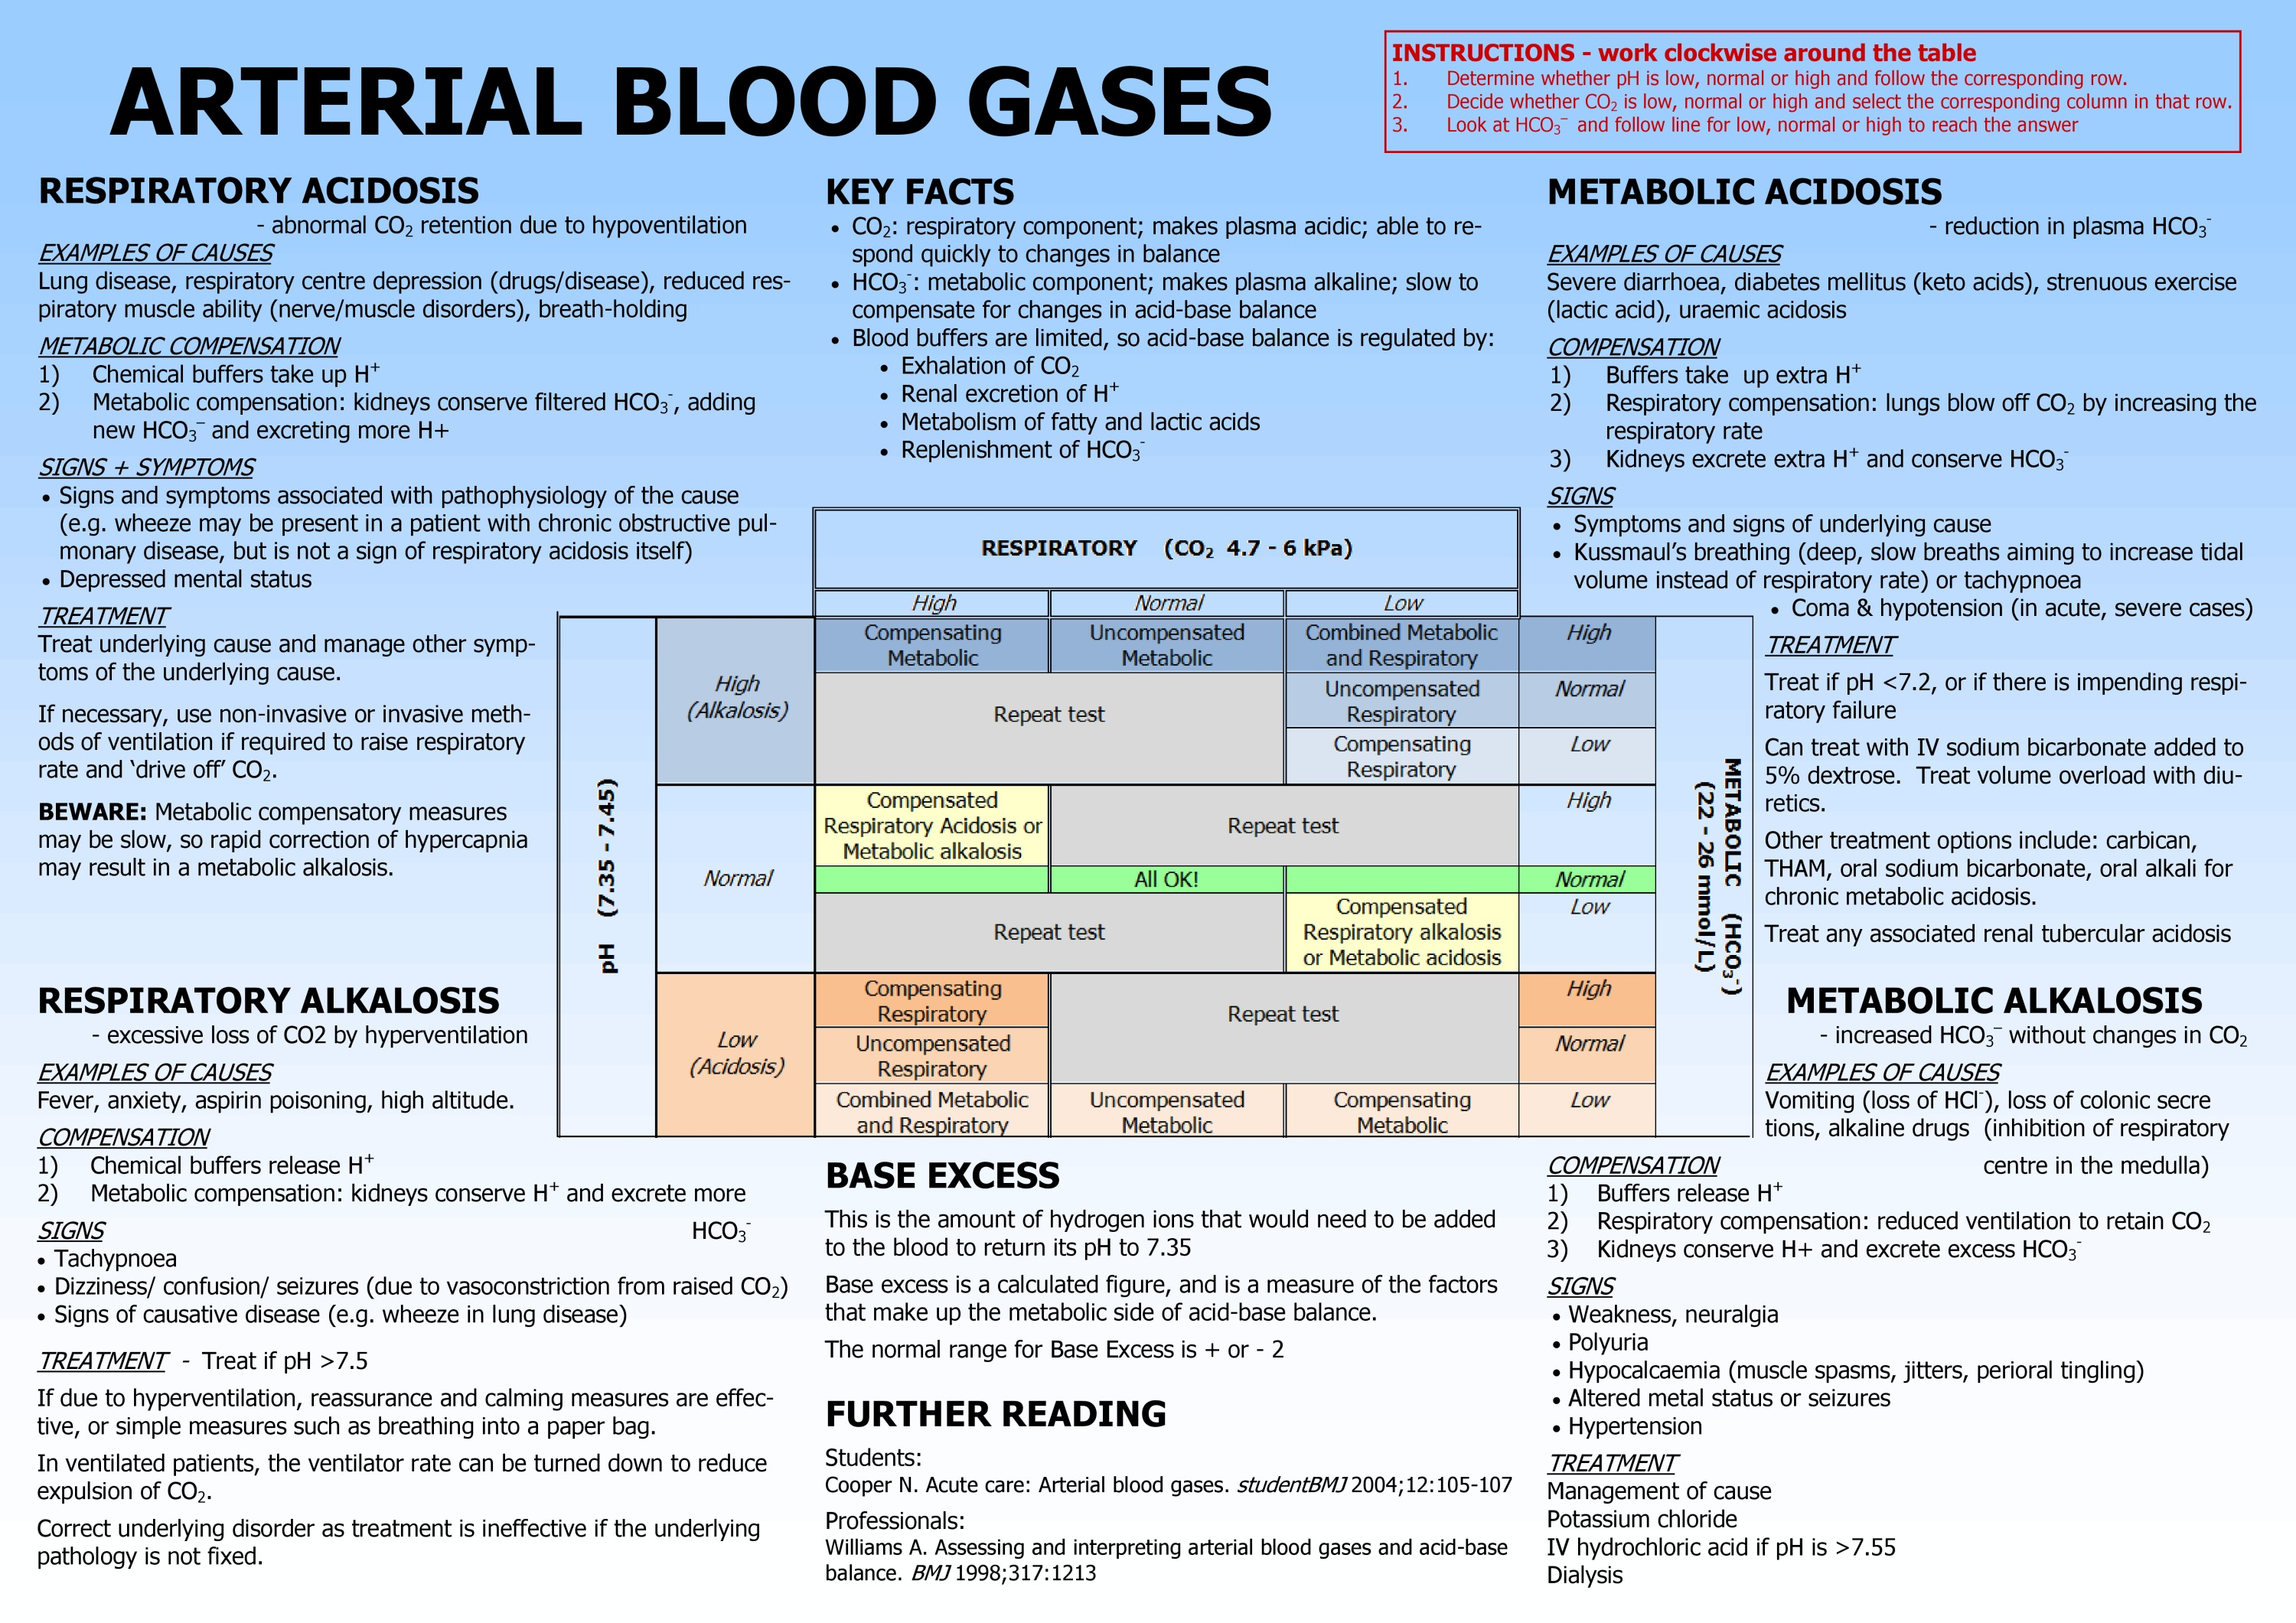 Arterial Blood Gases chart